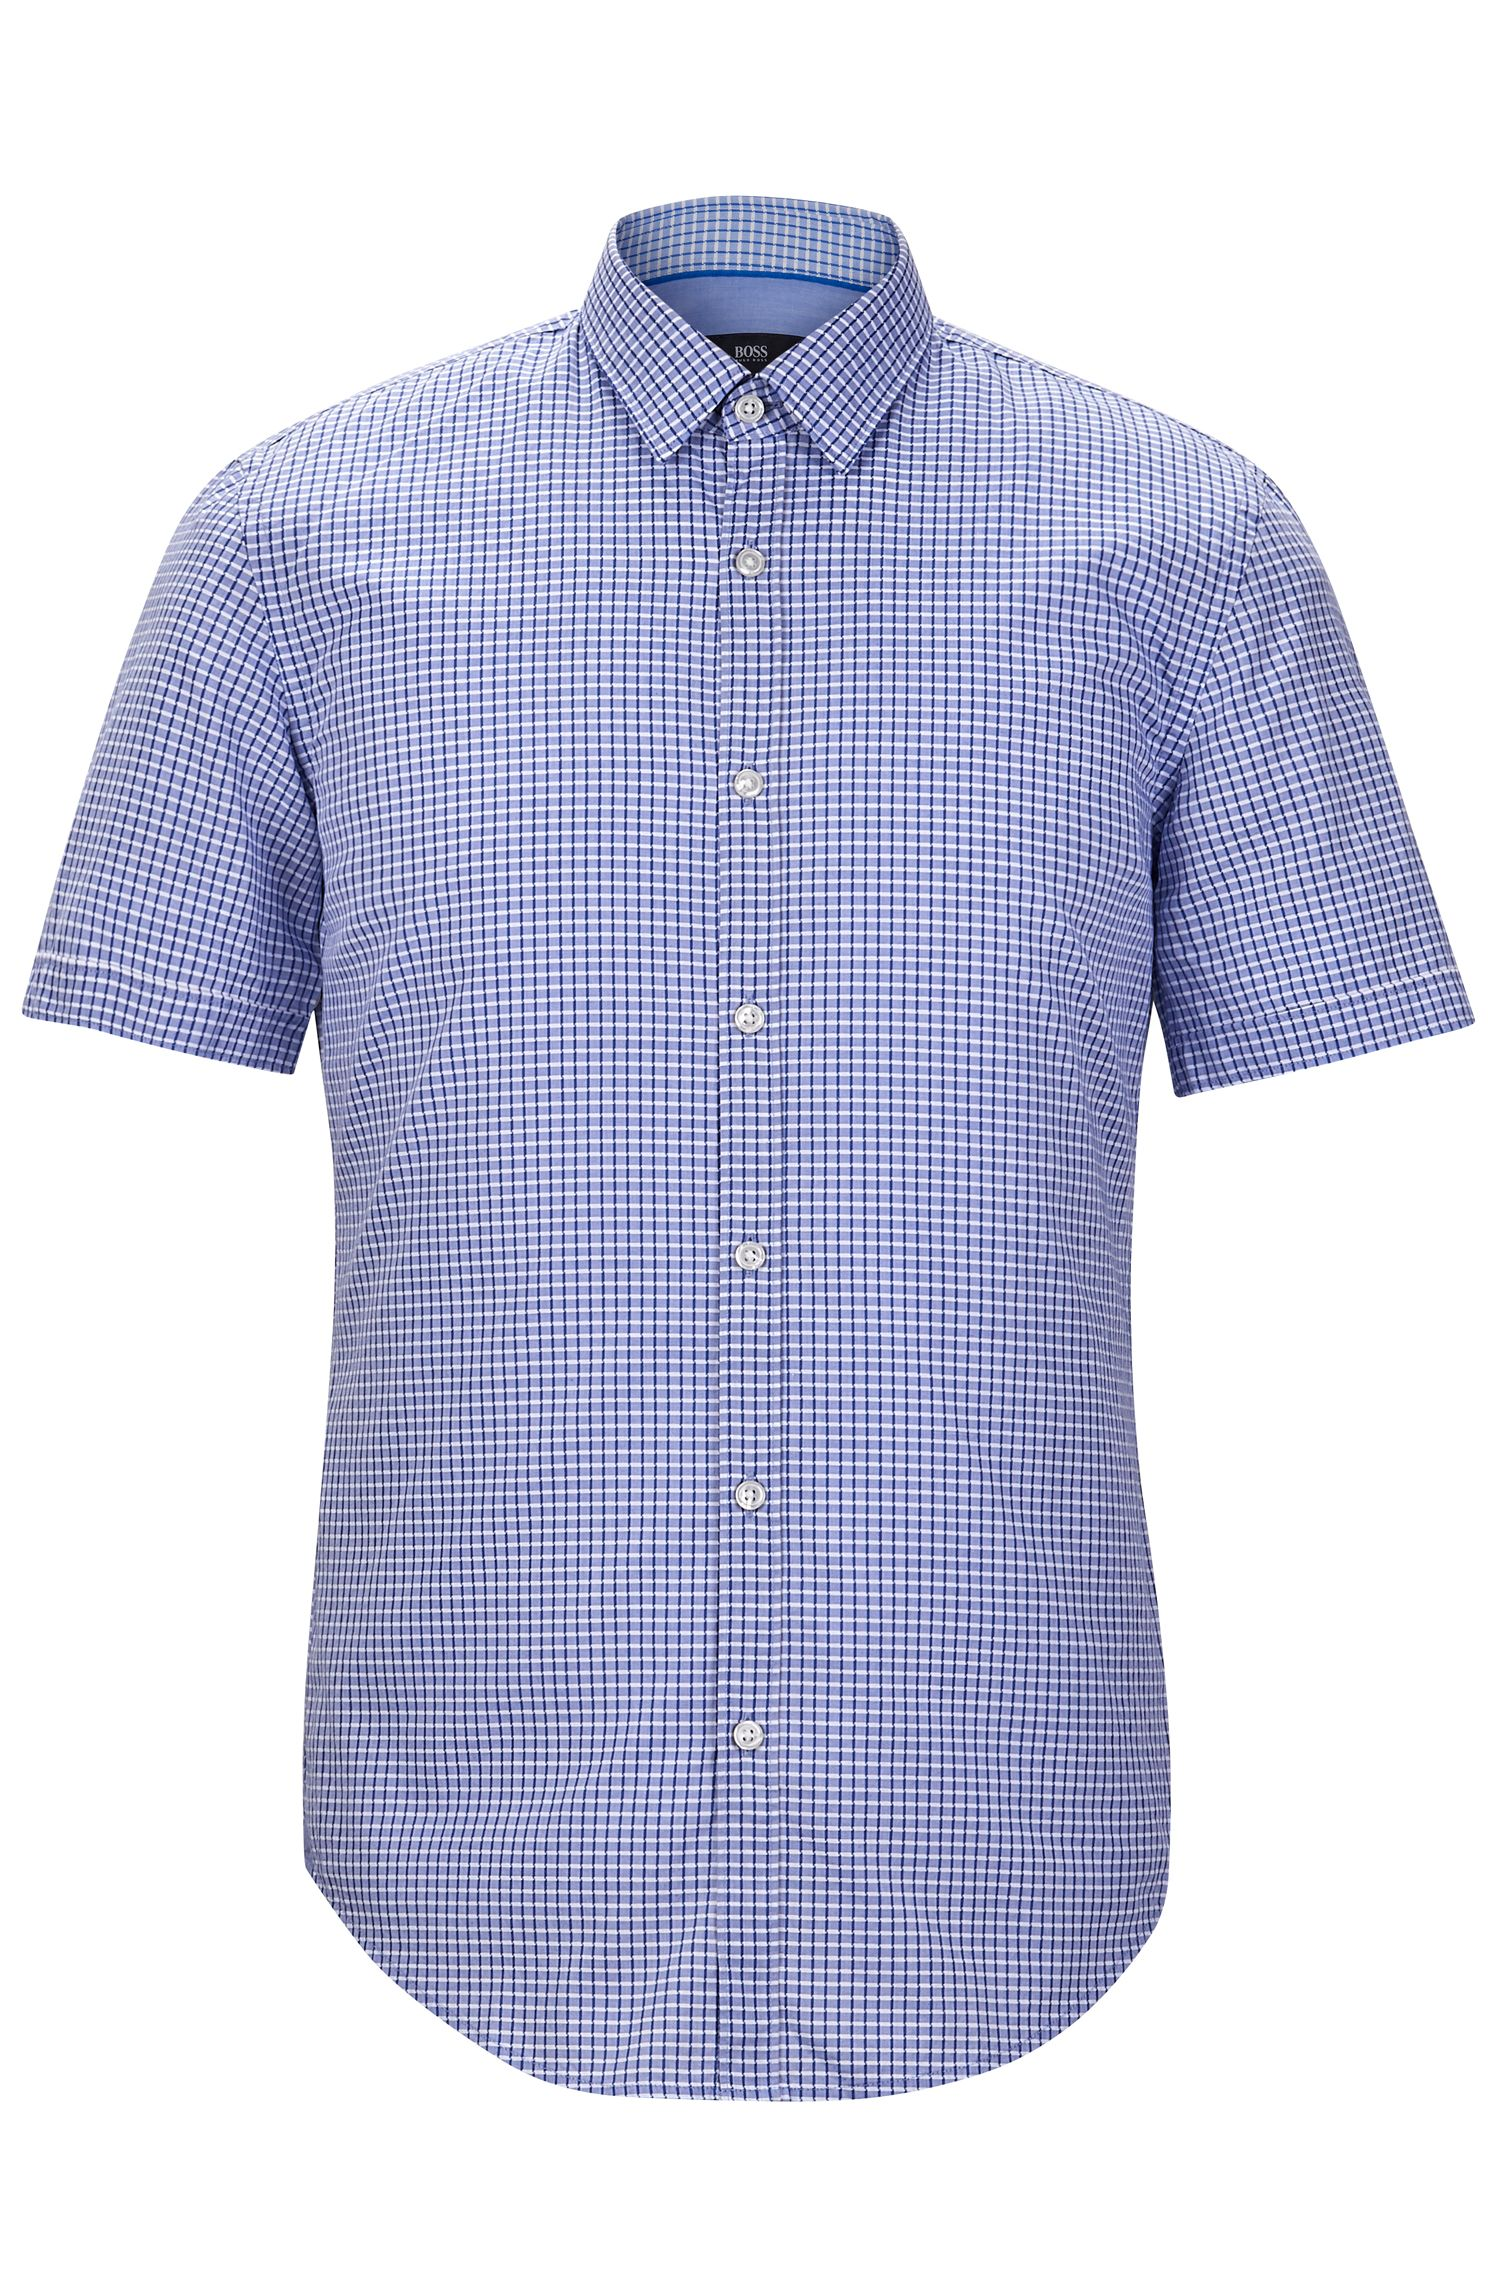 Cotton Blend Button-Down Shirt, Slim Fit | Ronn